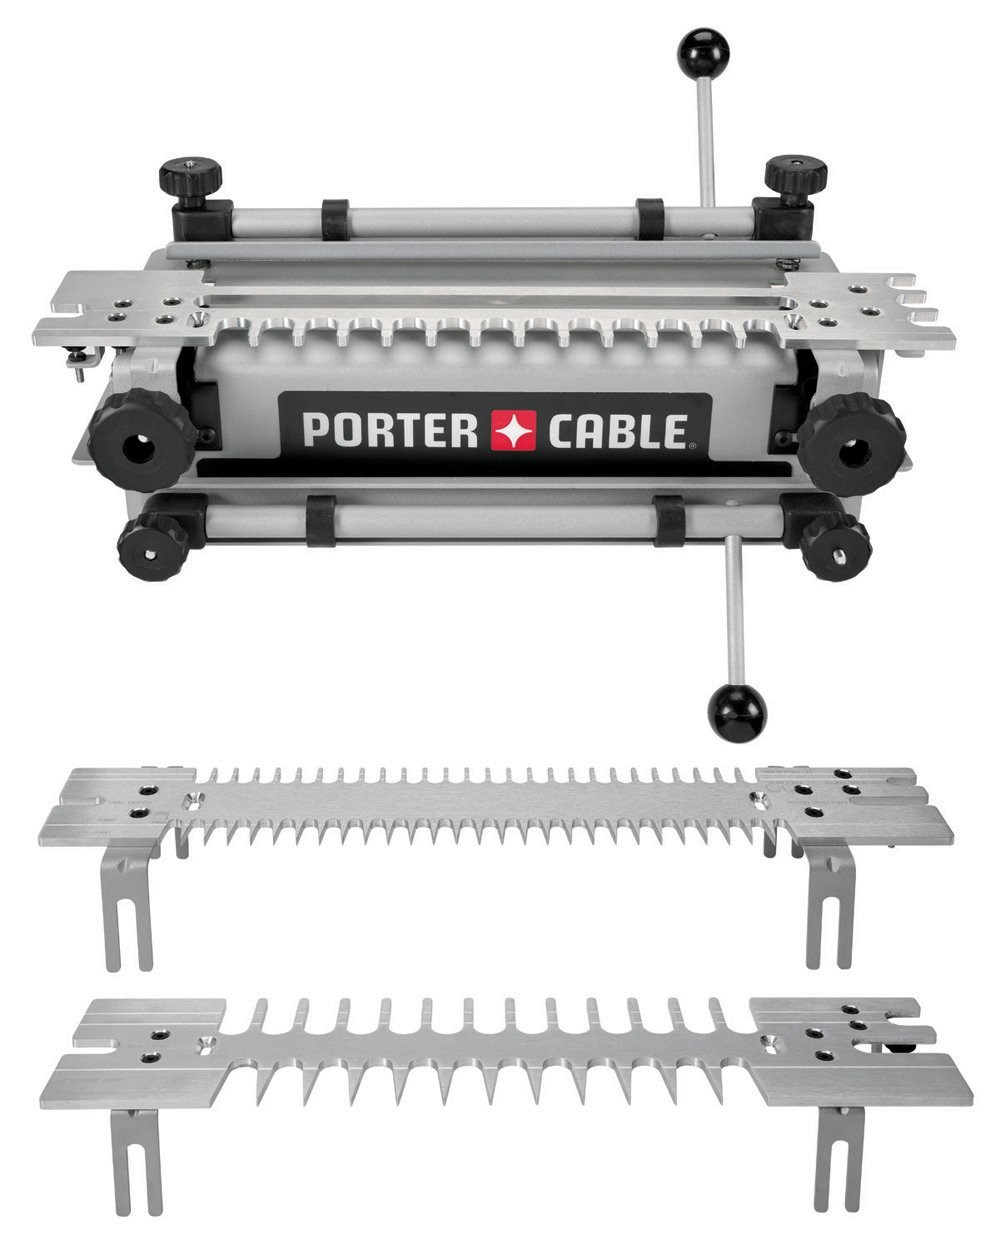 PORTER-CABLE 4216 Super Jig - Dovetail jig (4215 With Mini Template Kit)